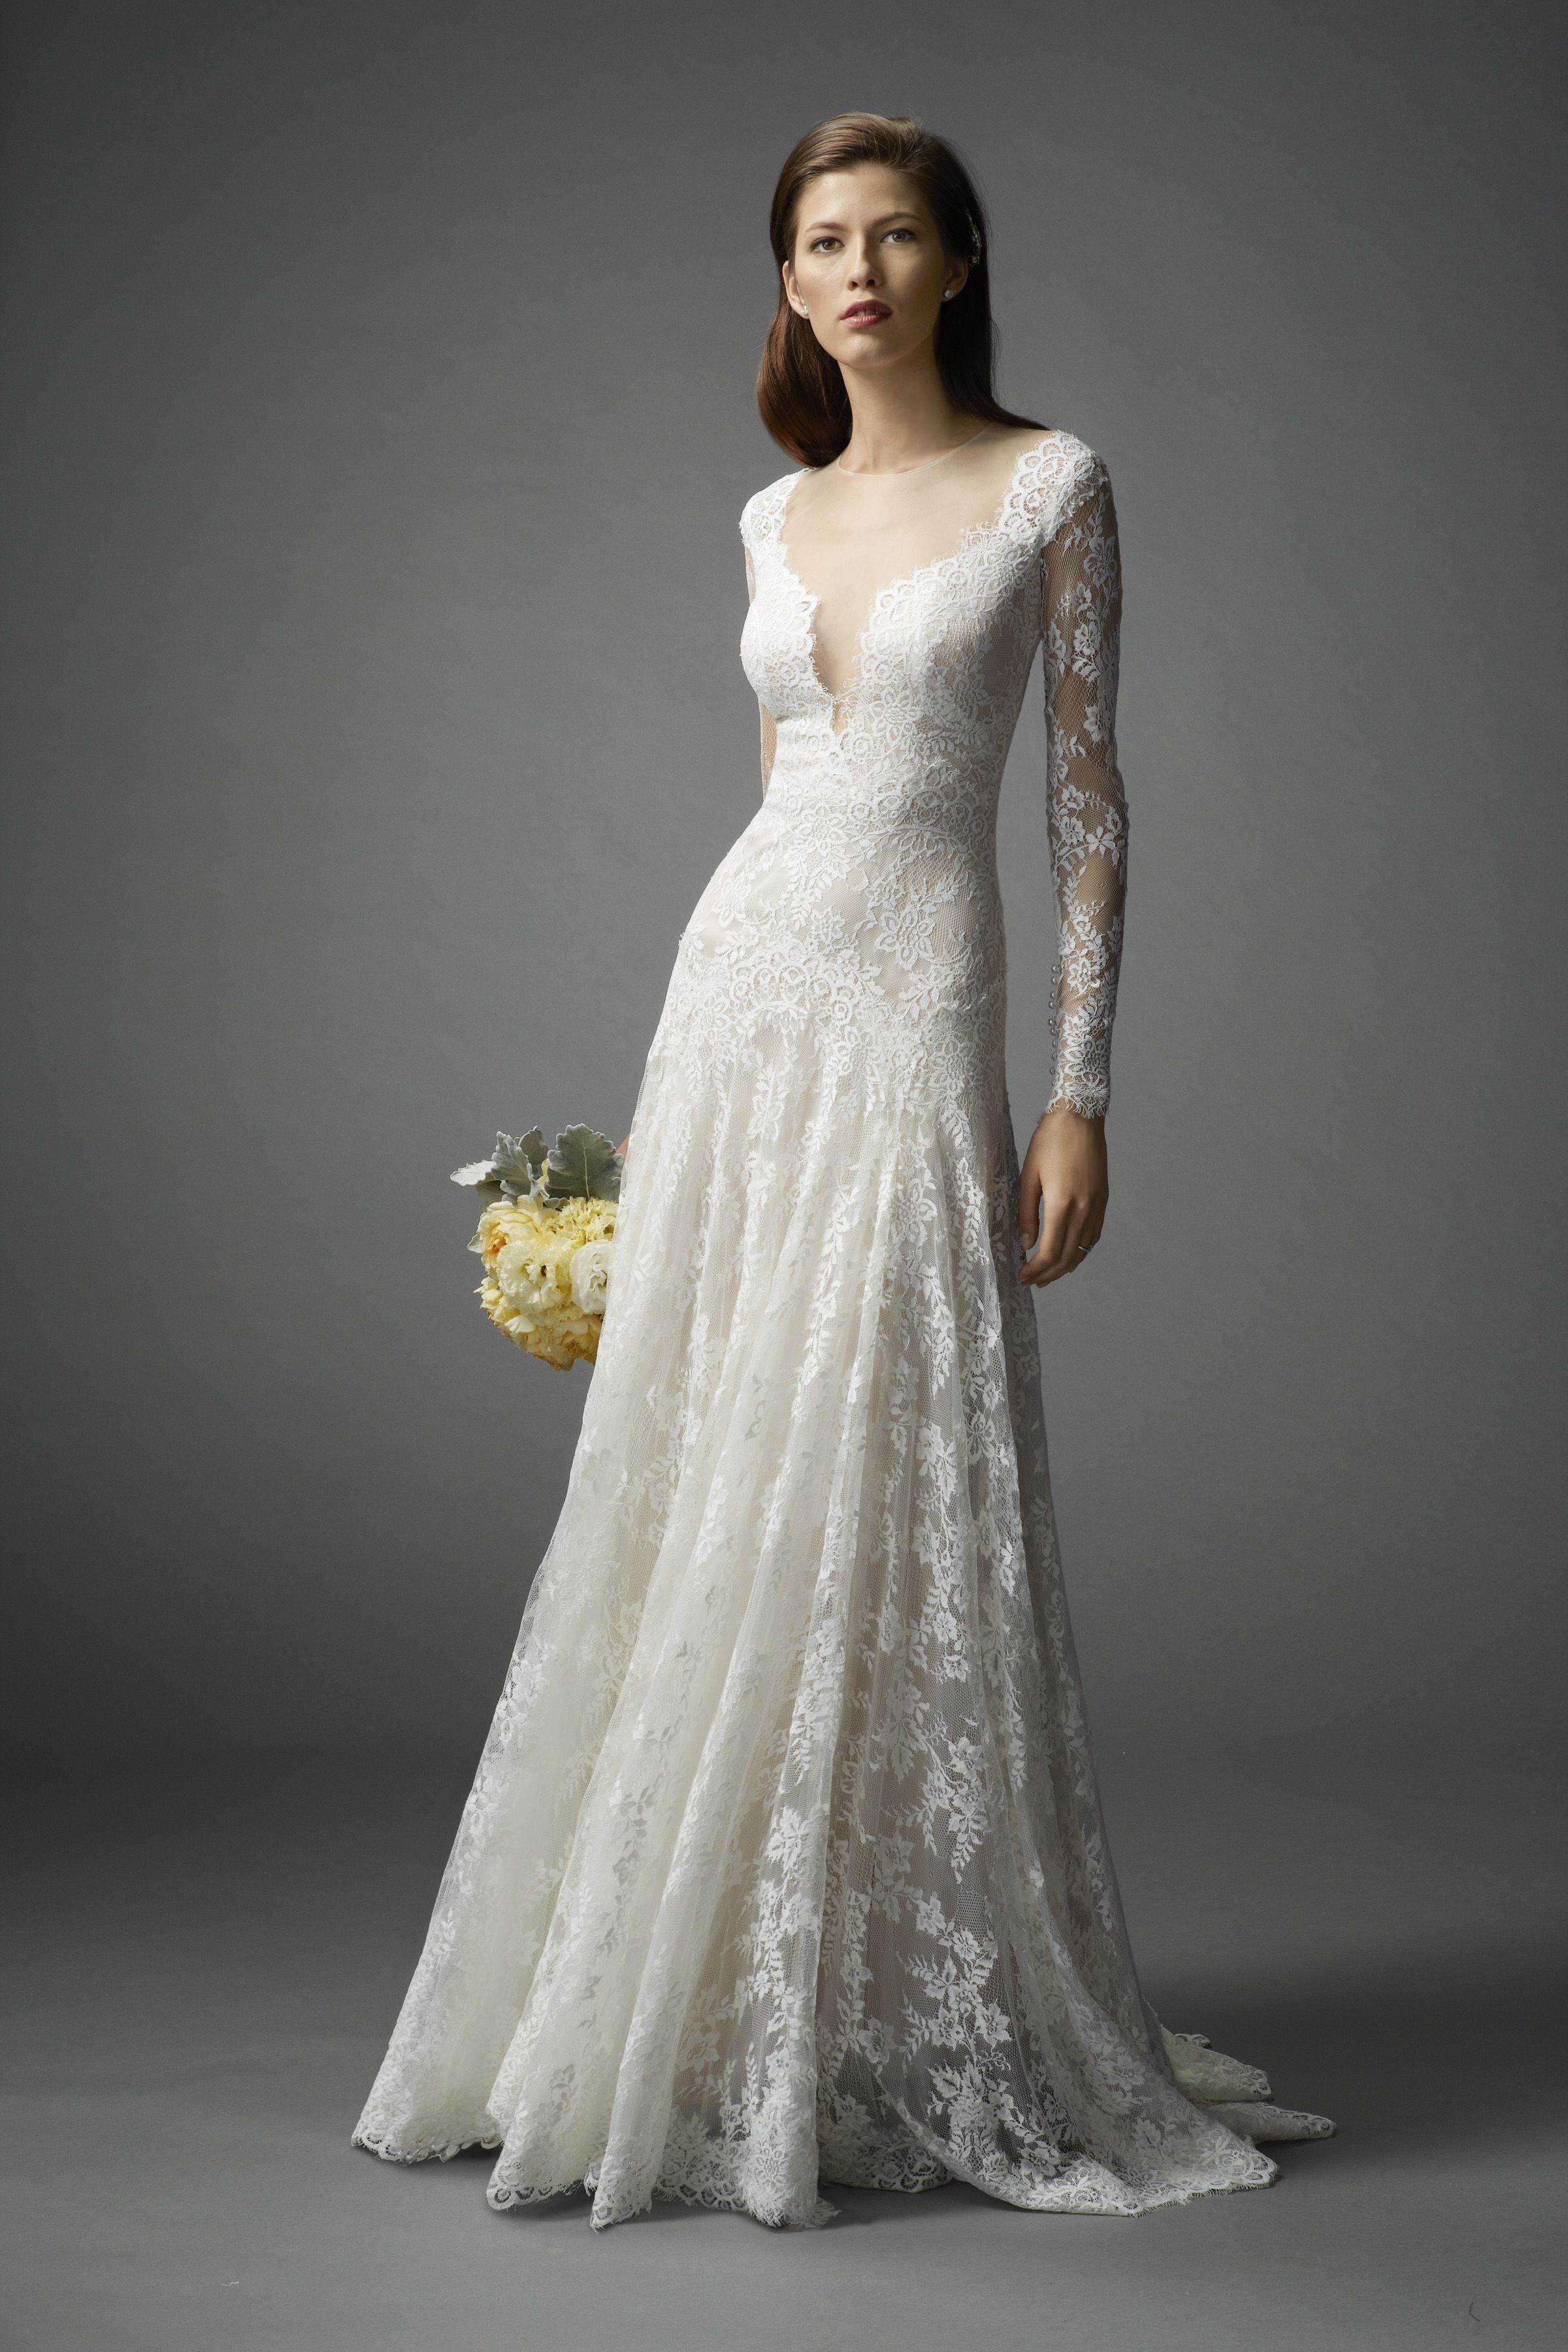 Lookbook gowns and wedding dress